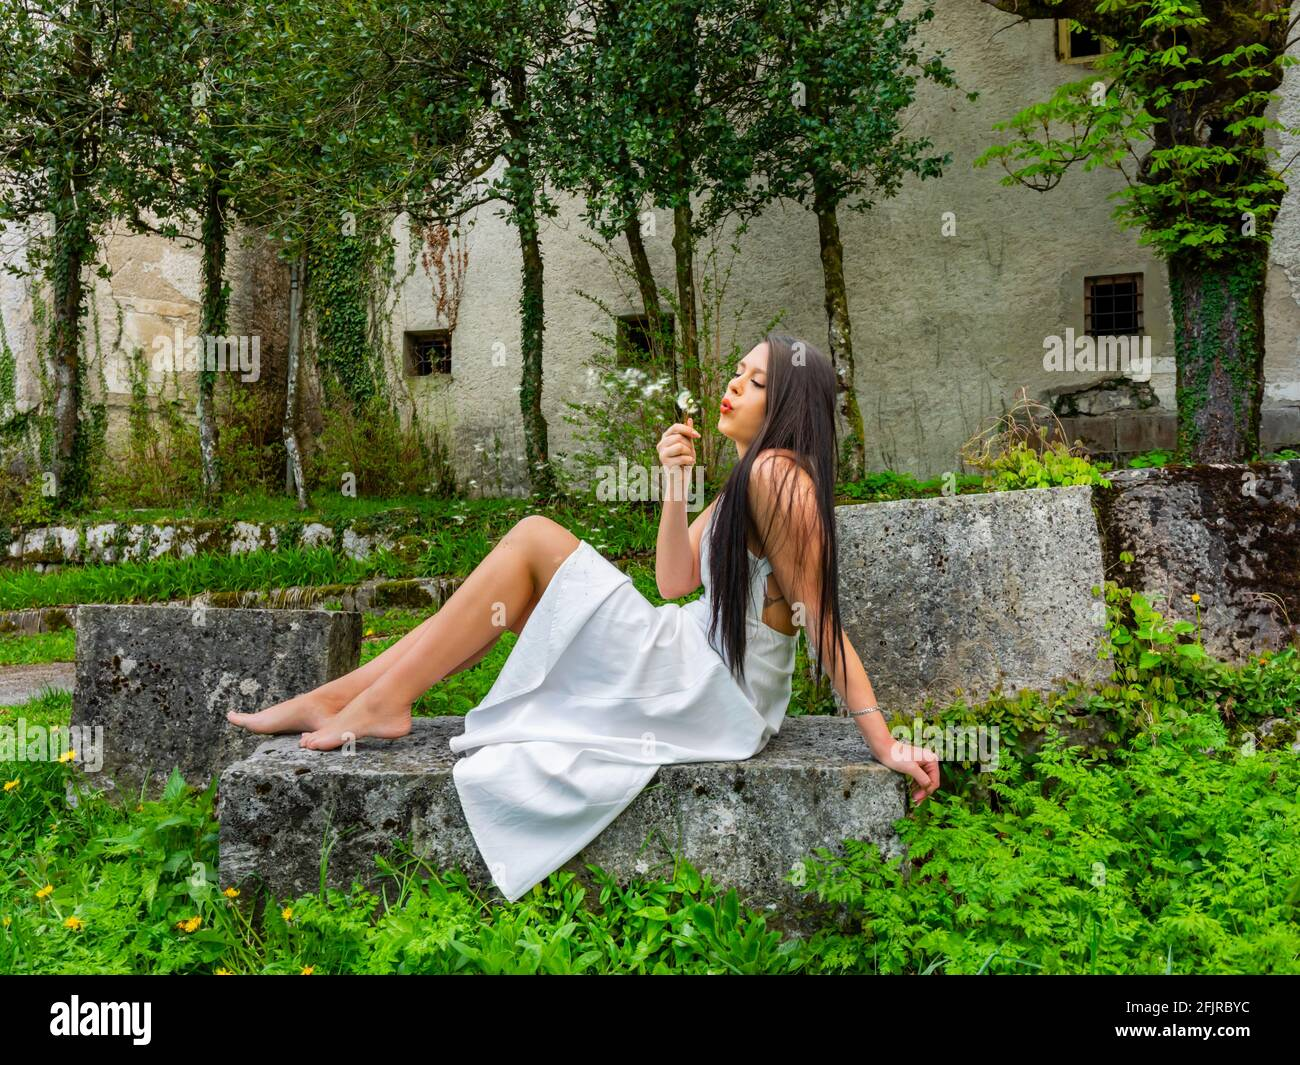 Make a wish blowing dandelion flower barefeet young woman aka countrygirl Stock Photo